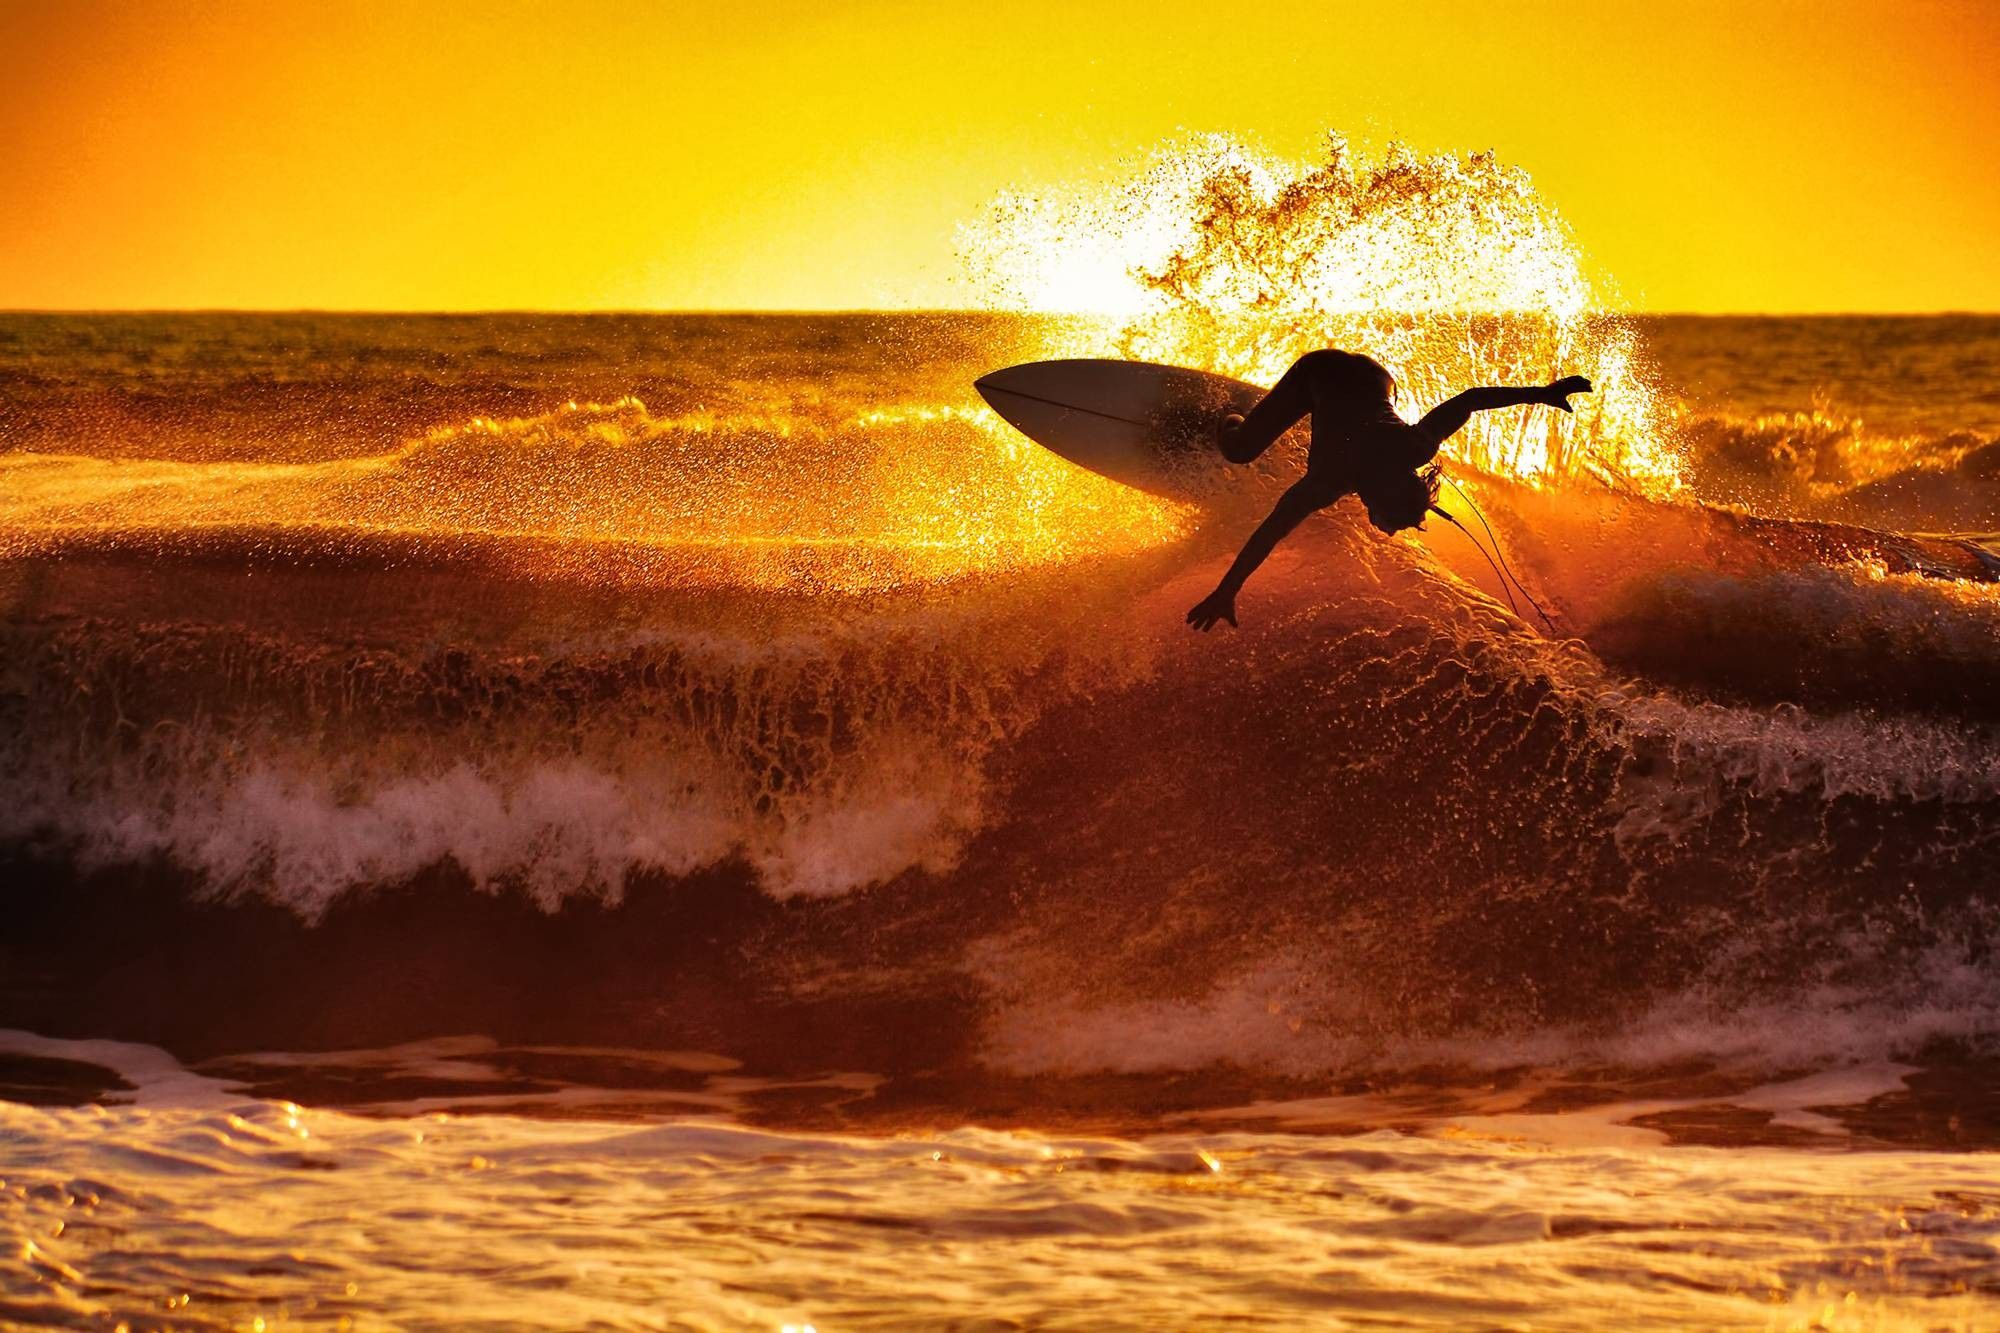 Surfing wallpaper hd wave hd wallpapers pinterest surf and sunset surfing wallpaper hd wave voltagebd Choice Image